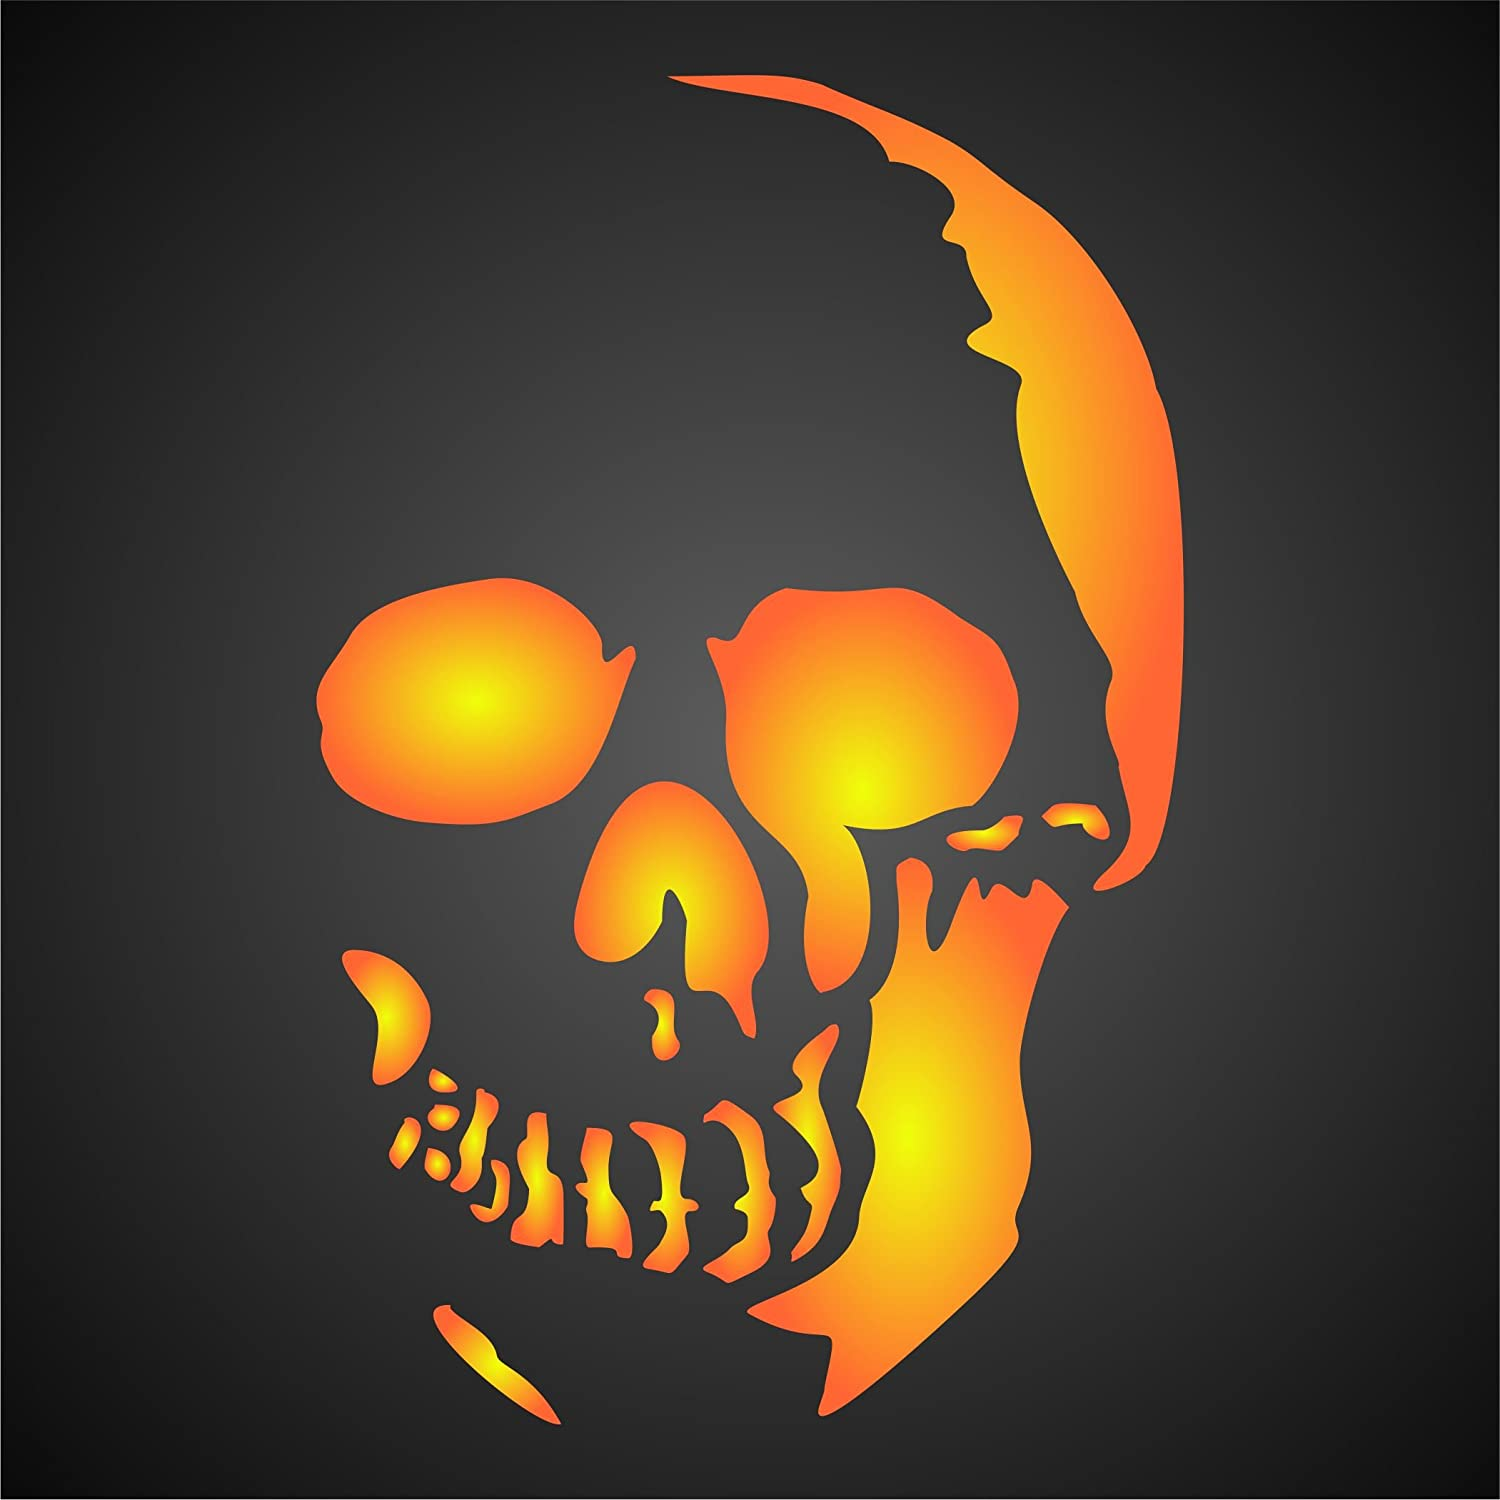 Halloween Skull Stencil (size 4.5w x 7h) Reusable Wall Stencils for Painting & Project Ideas - Use on Walls, Floors, Fabrics, Glass, Wood, Cards, and More... Stencils for Walls 5373369